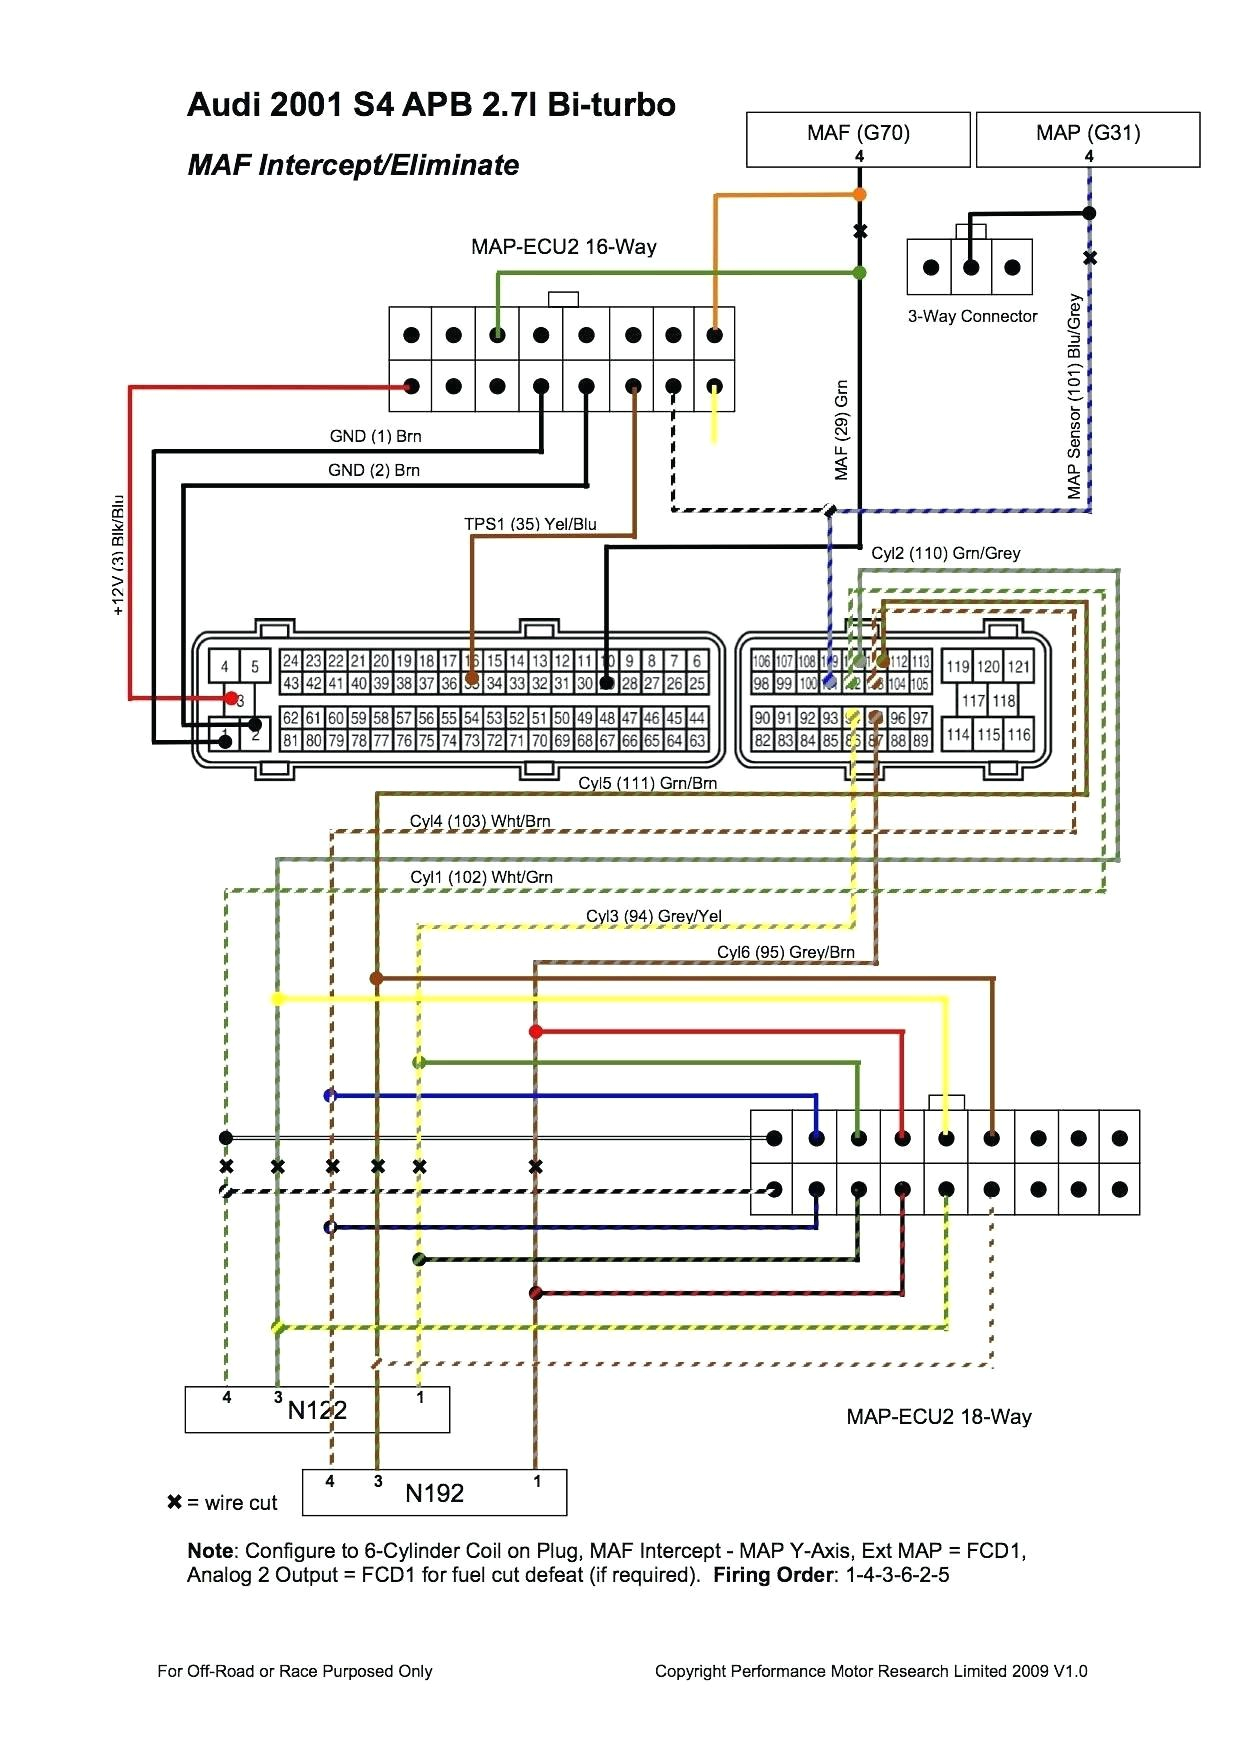 4g92 wiring diagram pdf elegant mitsubishi 4g93 engine diagram4g92 wiring diagram pdf beautiful mitsubishi 4g93 engine